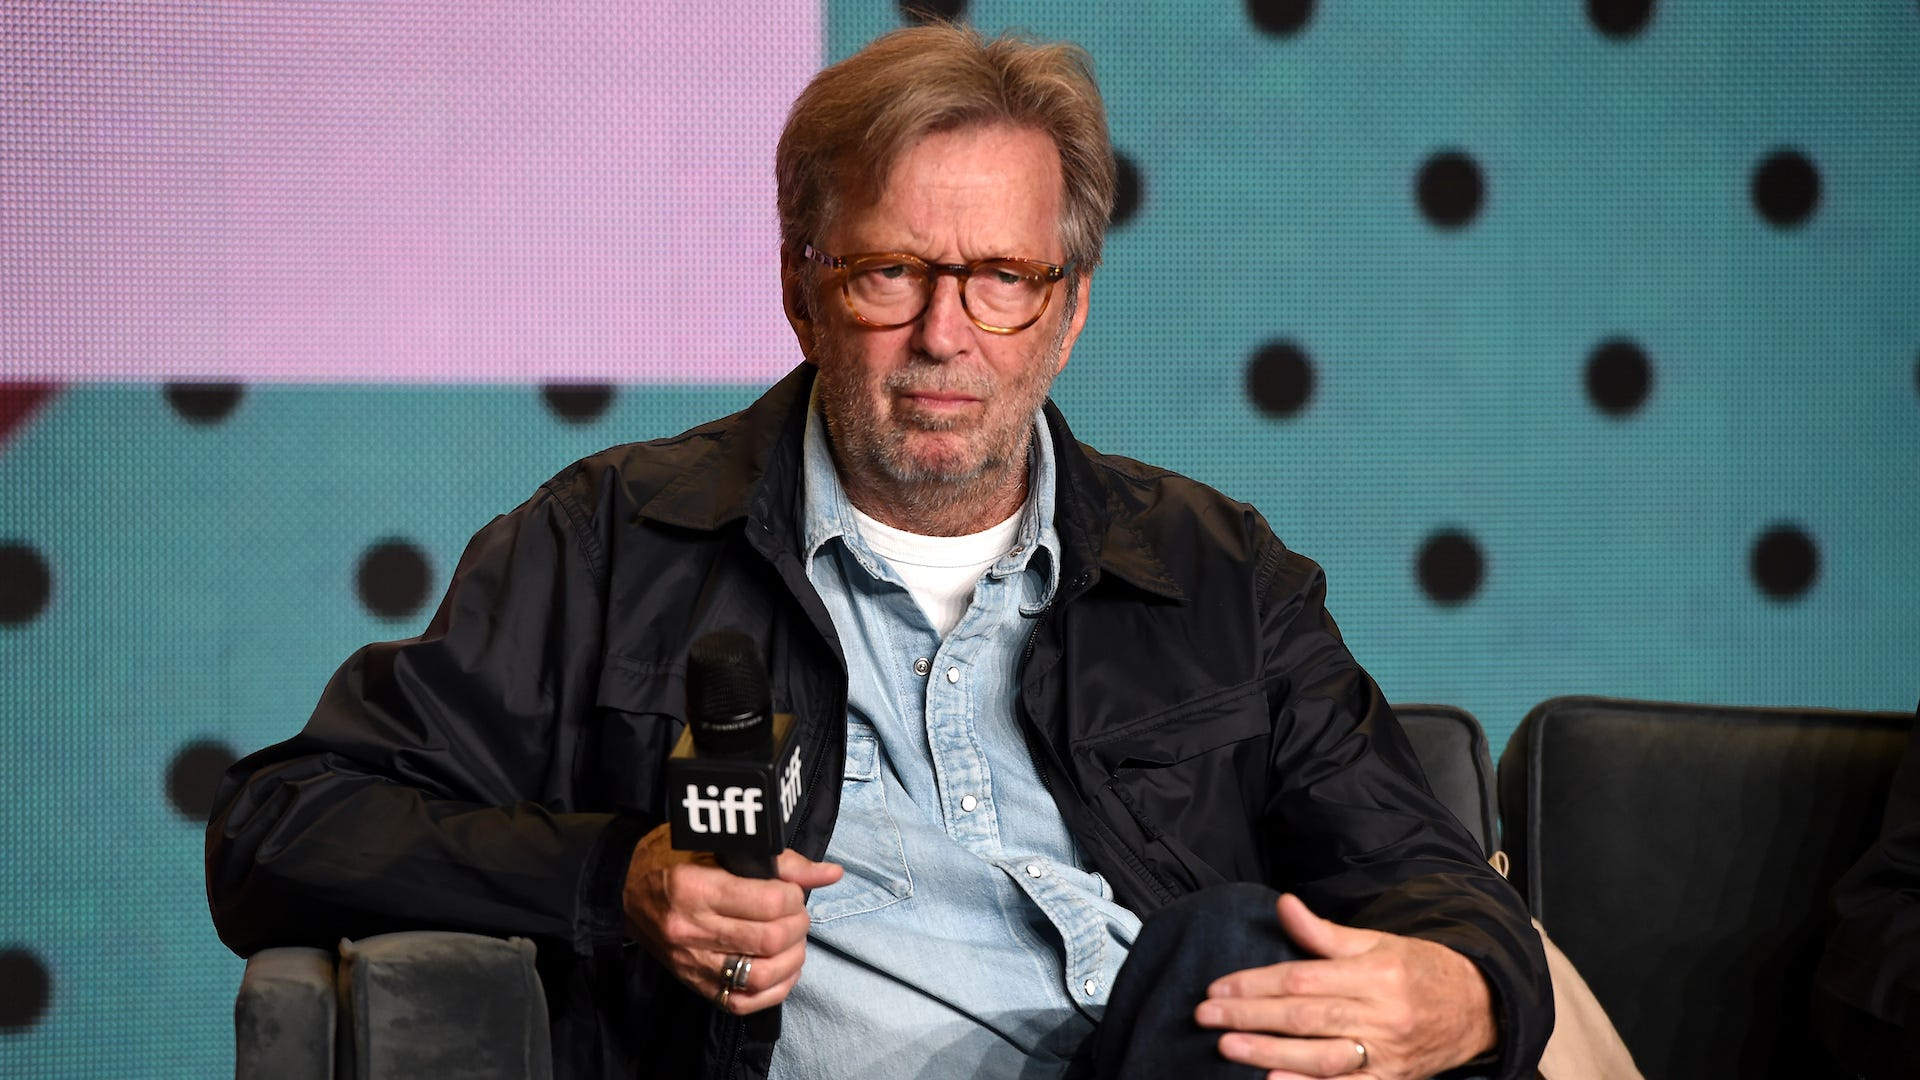 Eric Clapton will not play shows where a vaccination is required